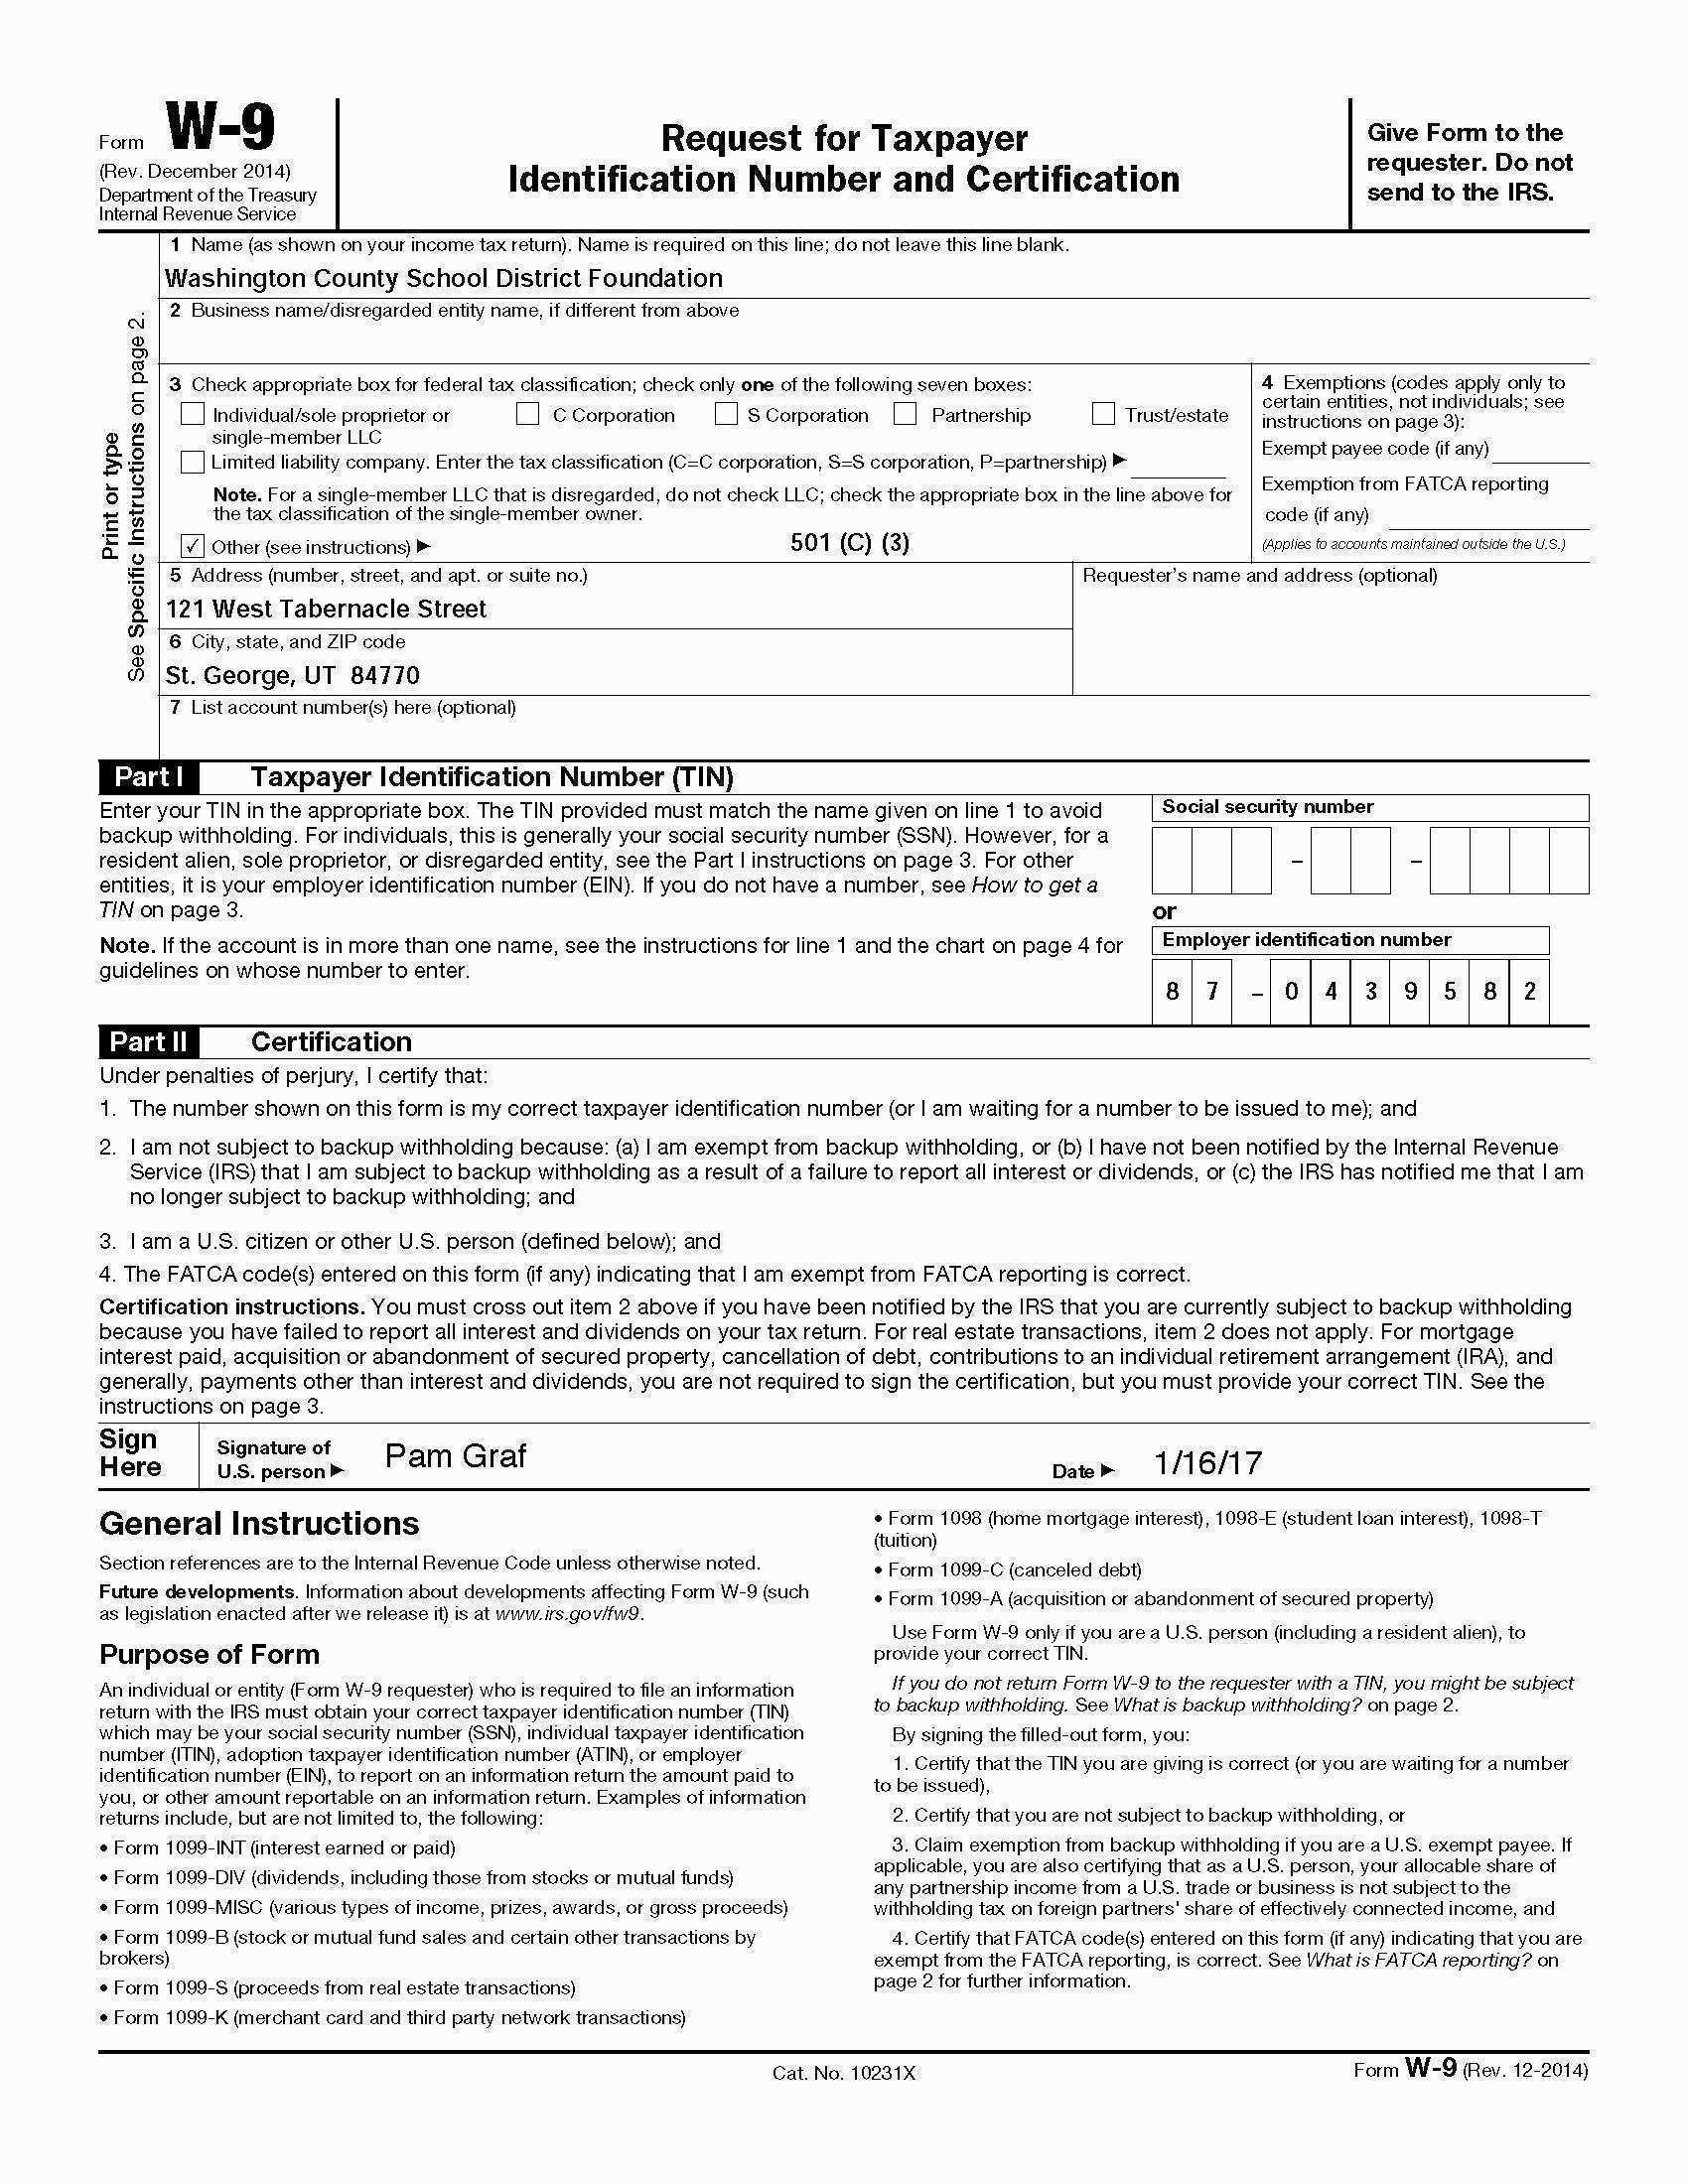 Irs 501c3 Name Change Form